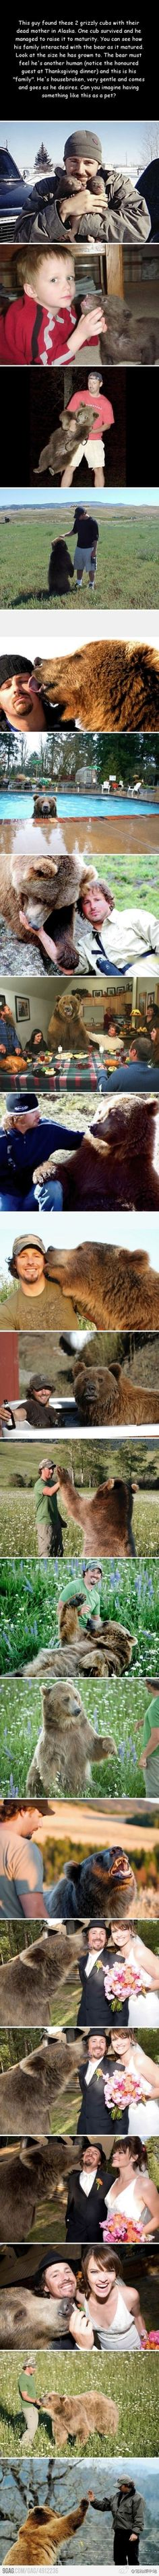 ooooh now i want a bear.